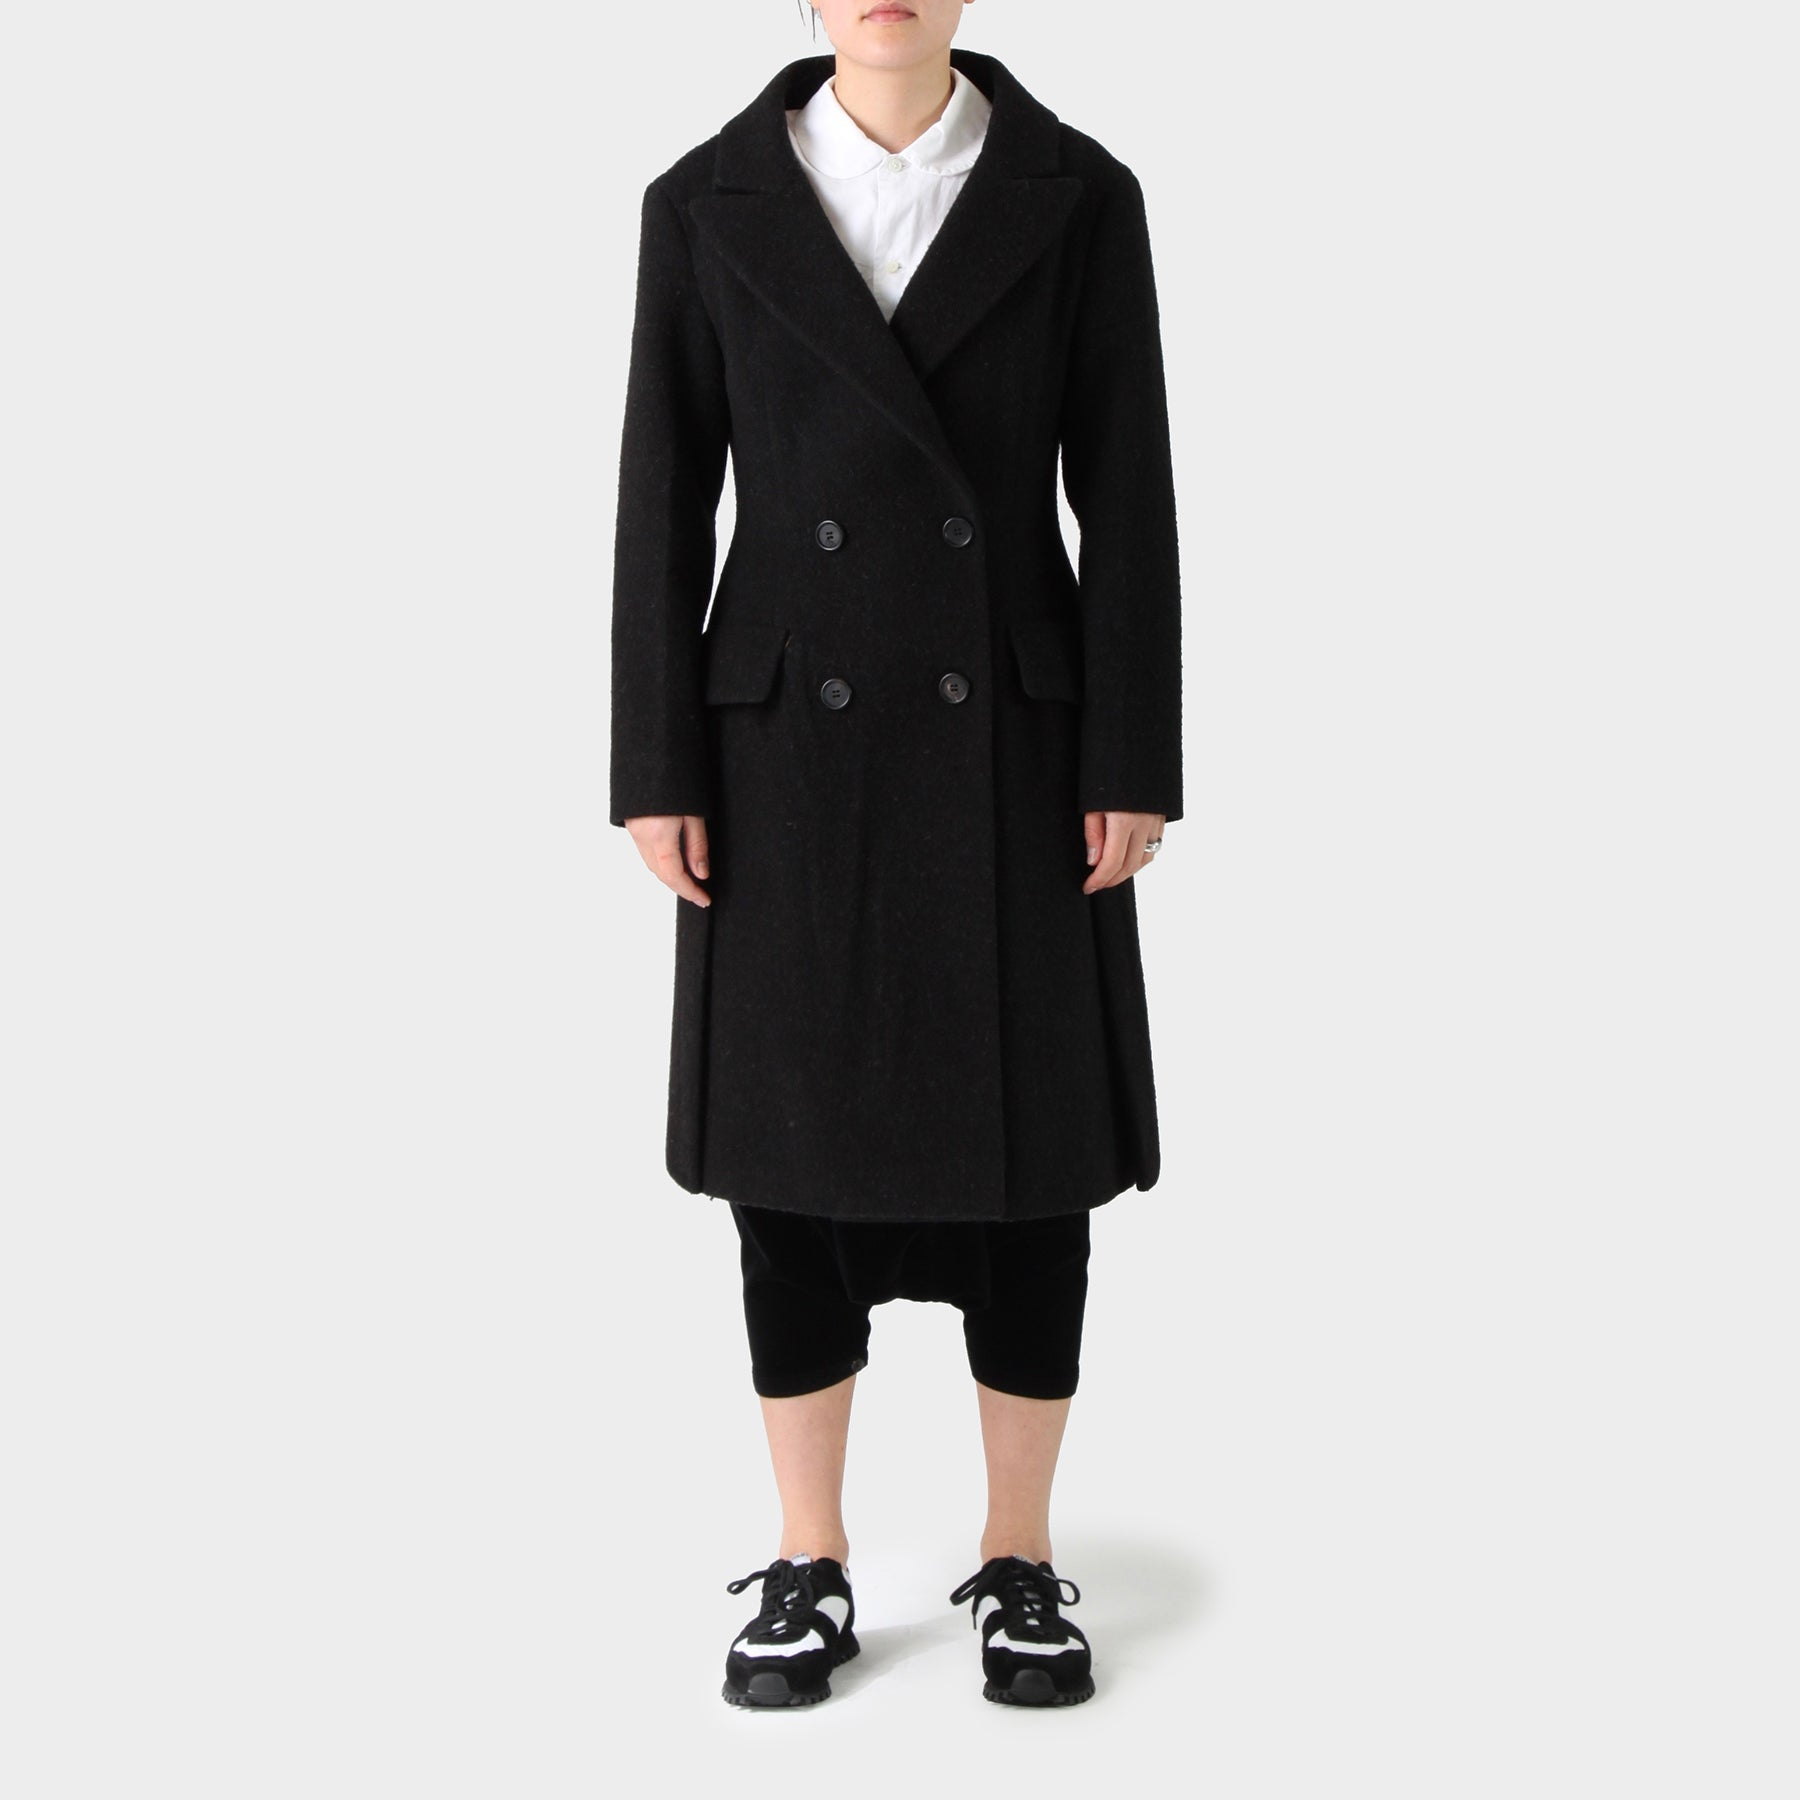 Prada Wool Double Breasted Peak Lapel Long Coat